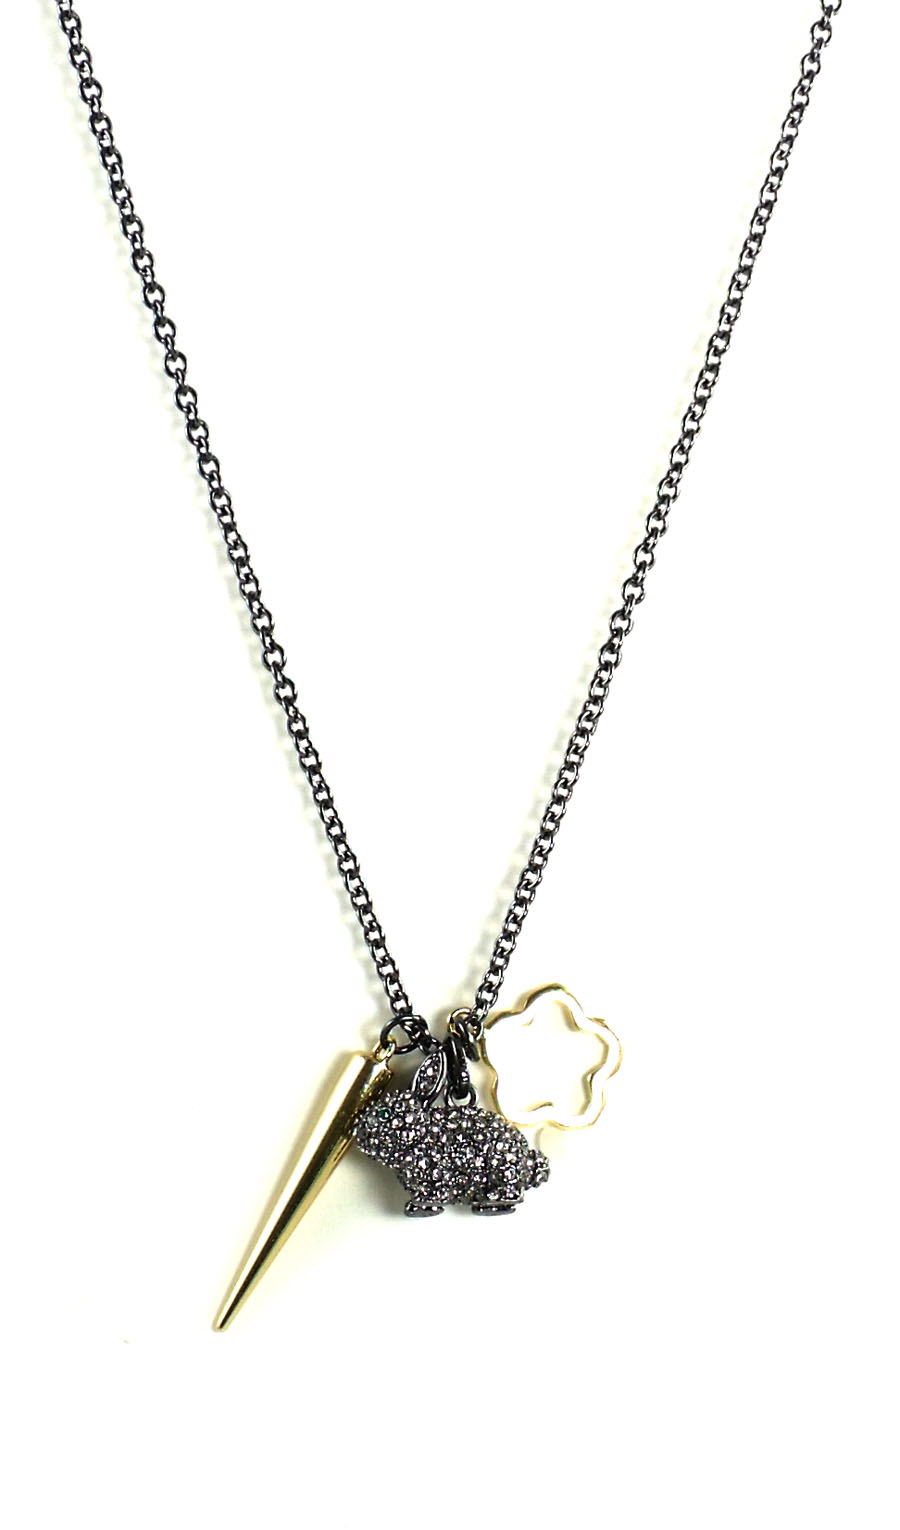 Juicy Couture Jewelry Black Silver Pave Bunny Necklace